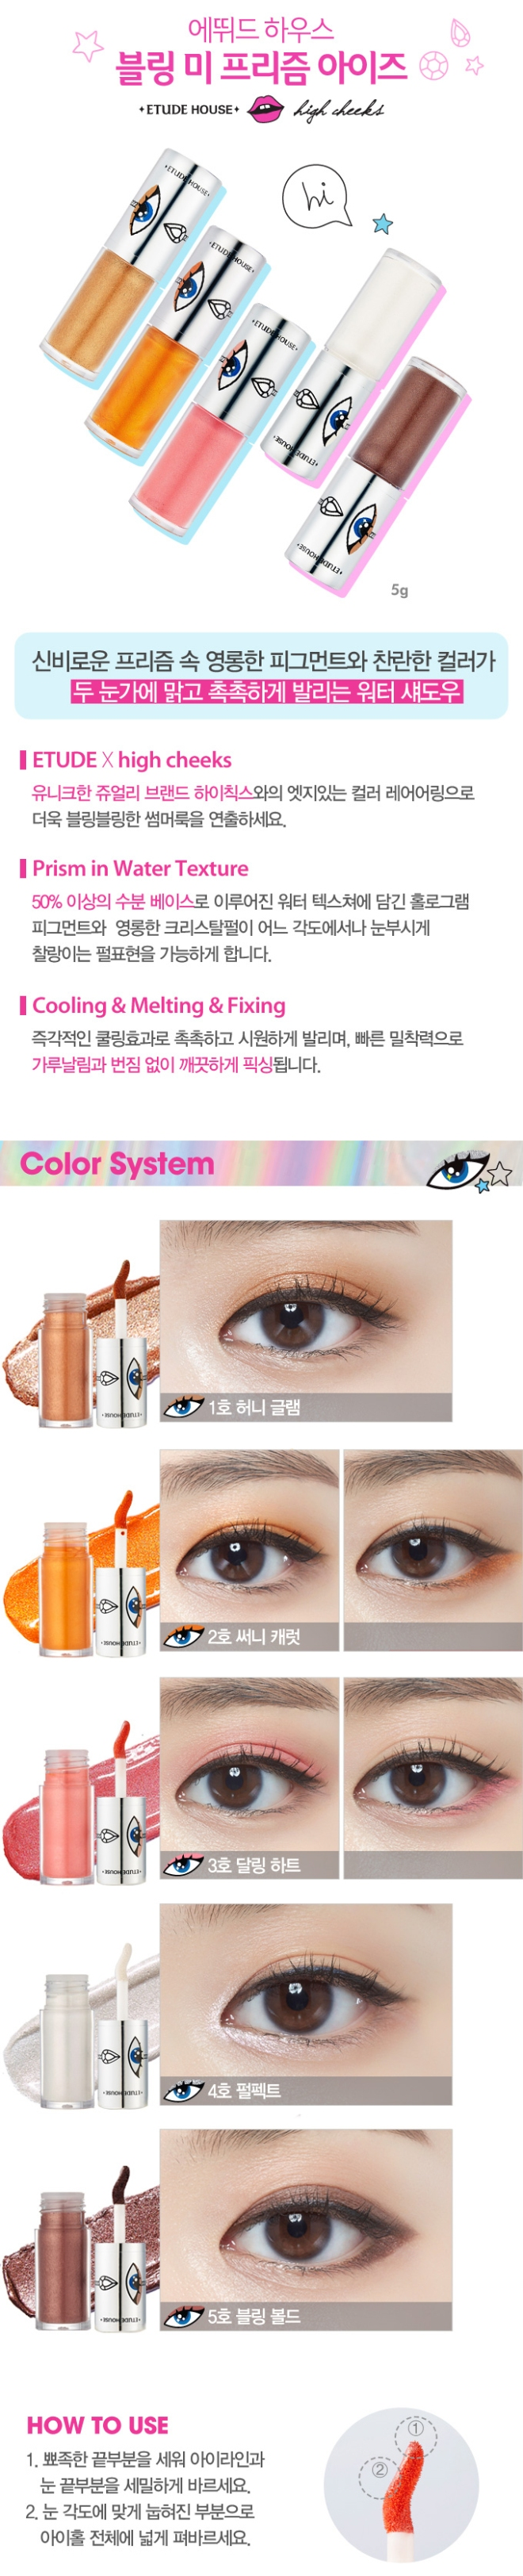 (Etude House x High Cheeks - Bling Me Prism Eyes) Credit: Etude House Korea website